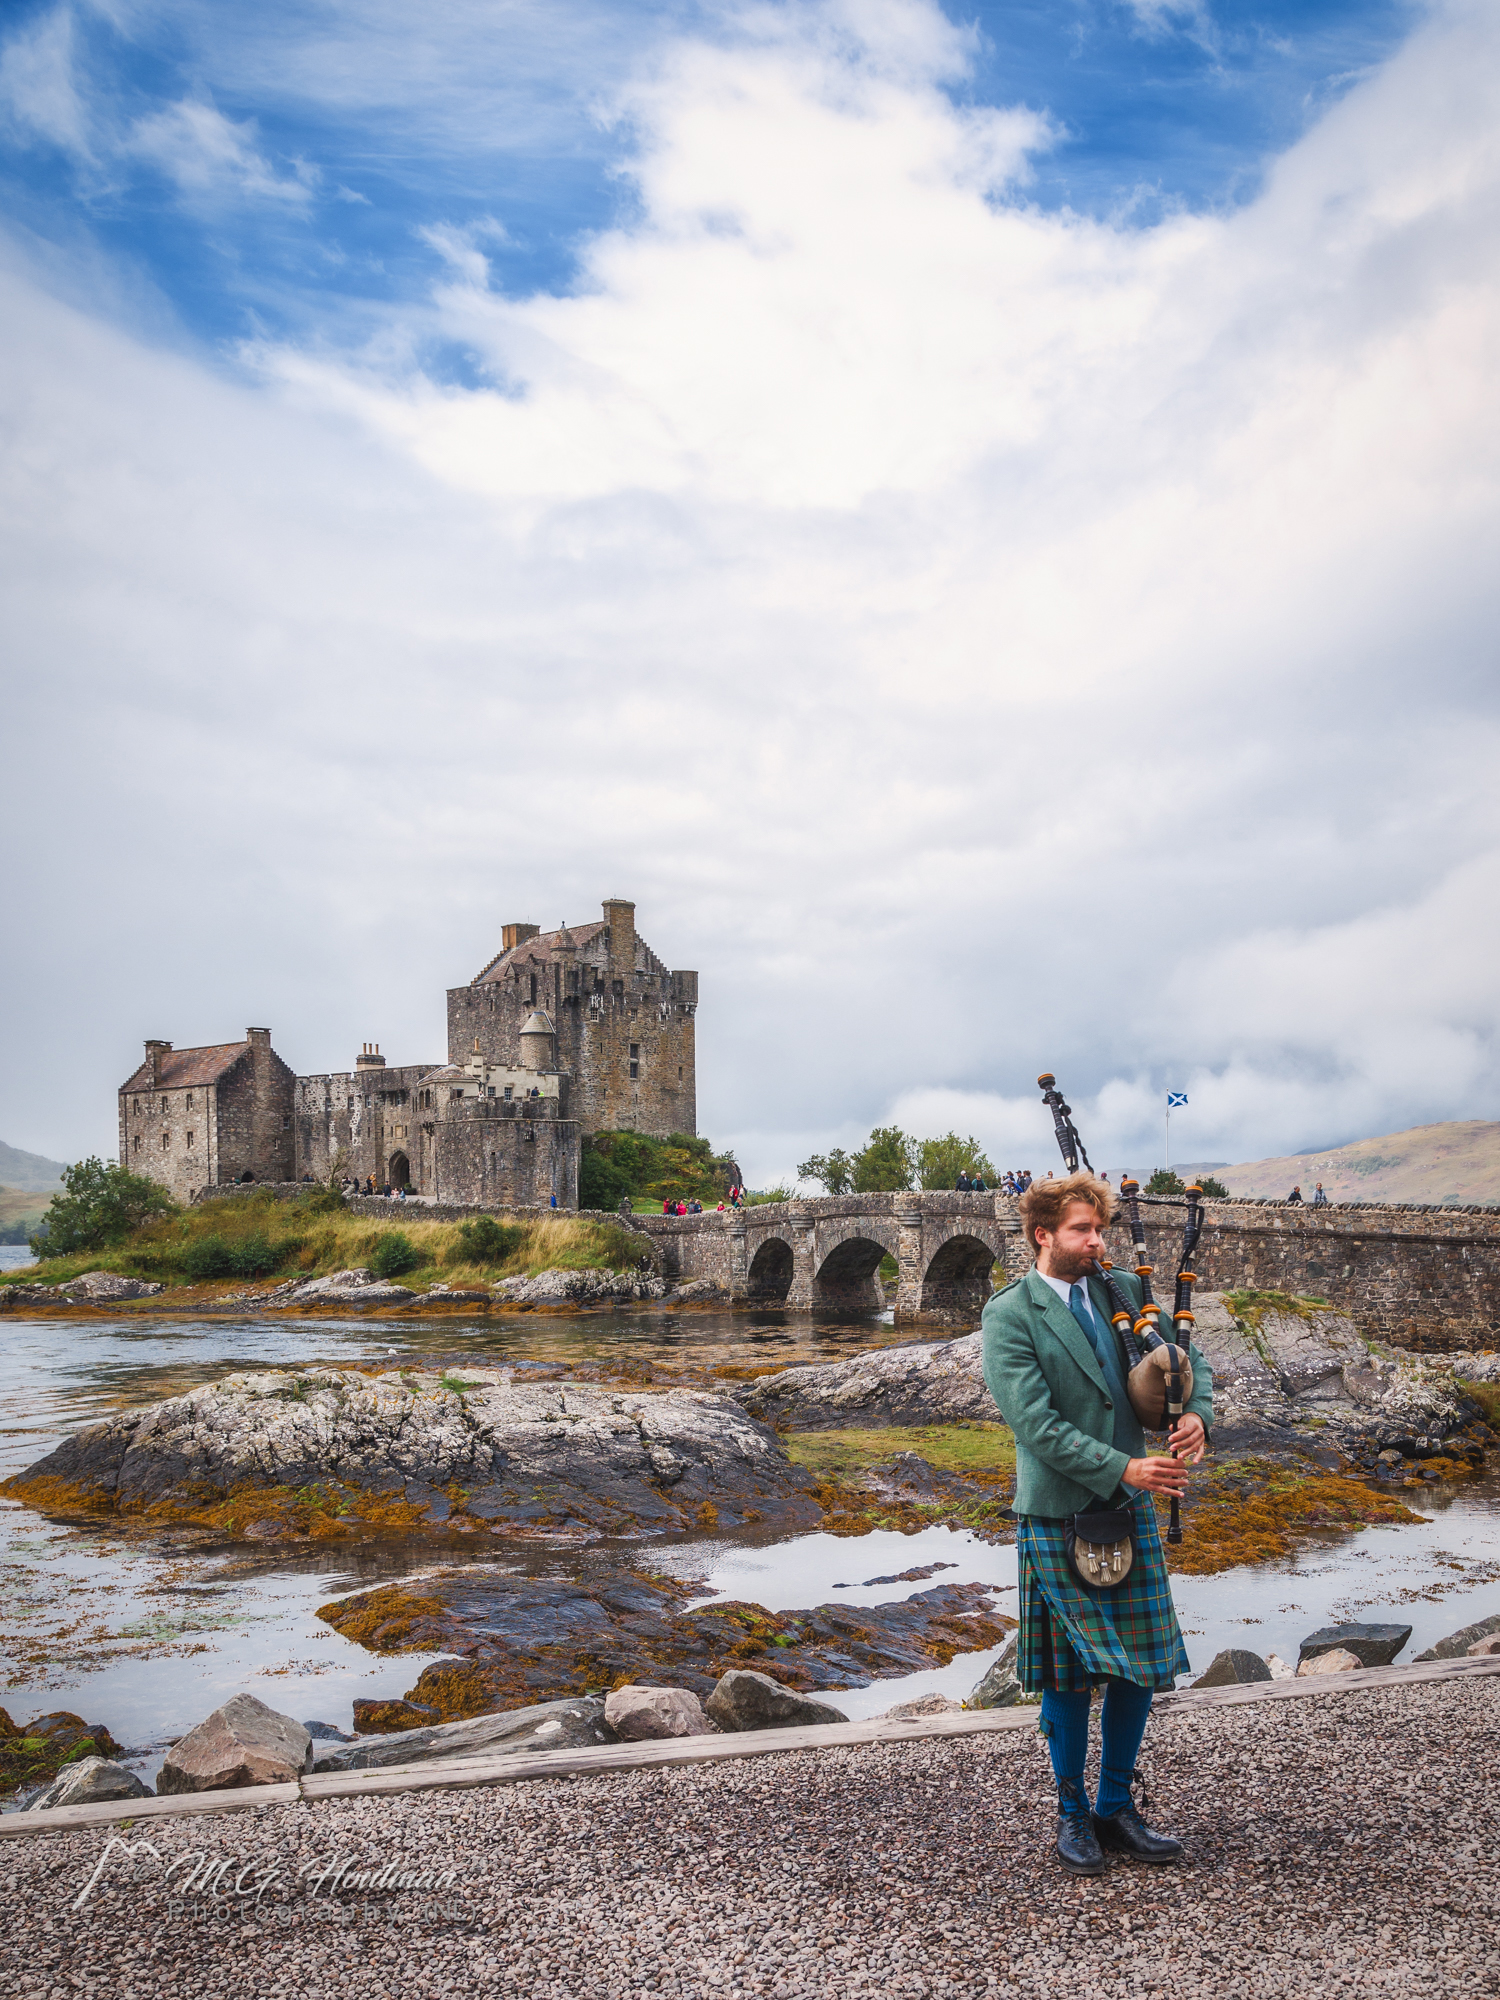 Bagpipe player in front of Eilean Donan Castle